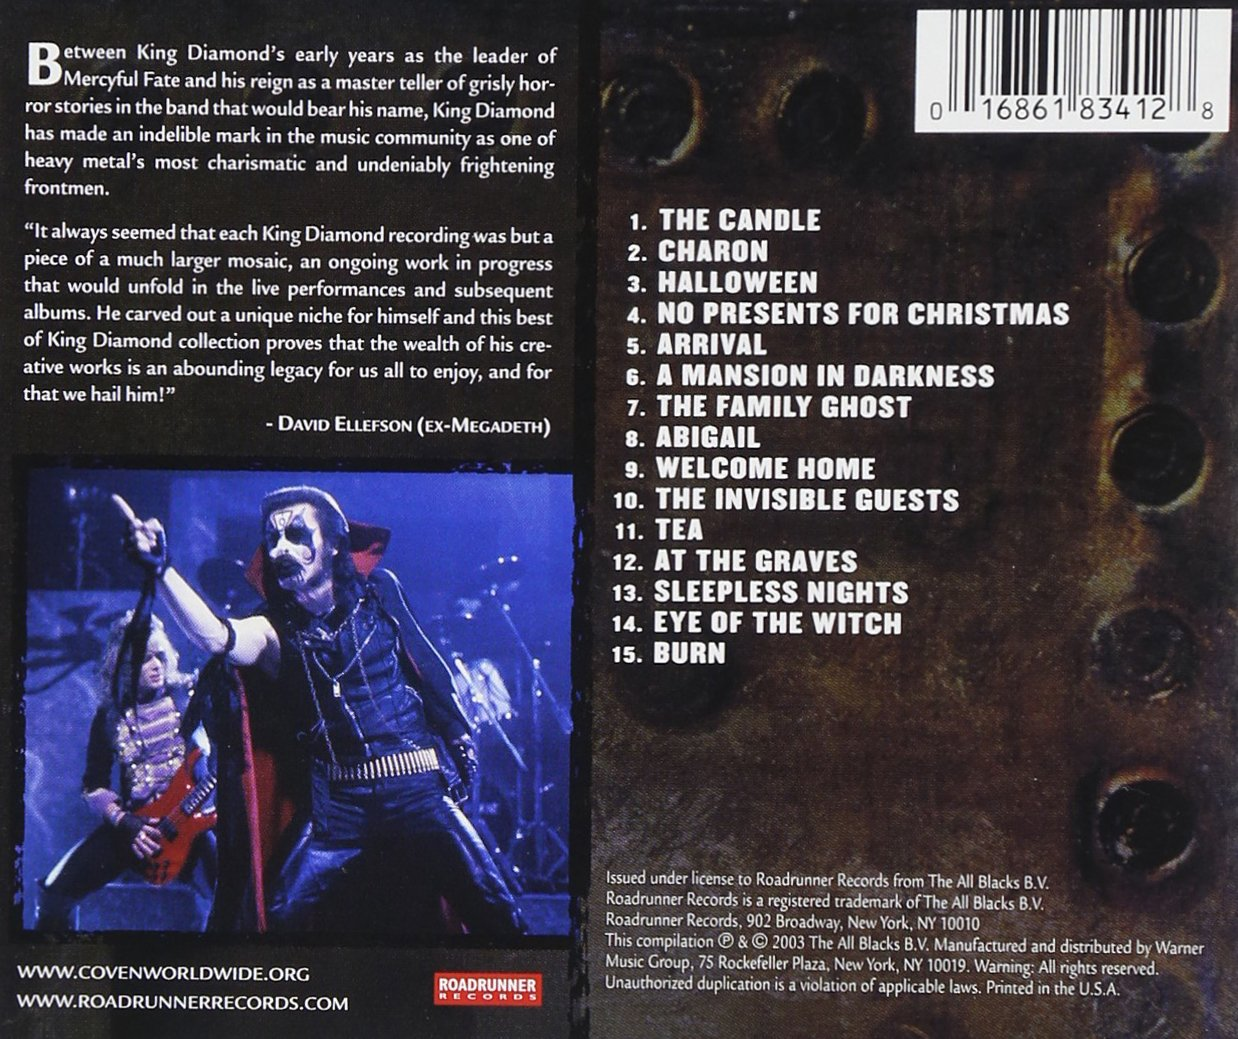 King Diamond - Best of: KING DIAMOND - Amazon.com Music